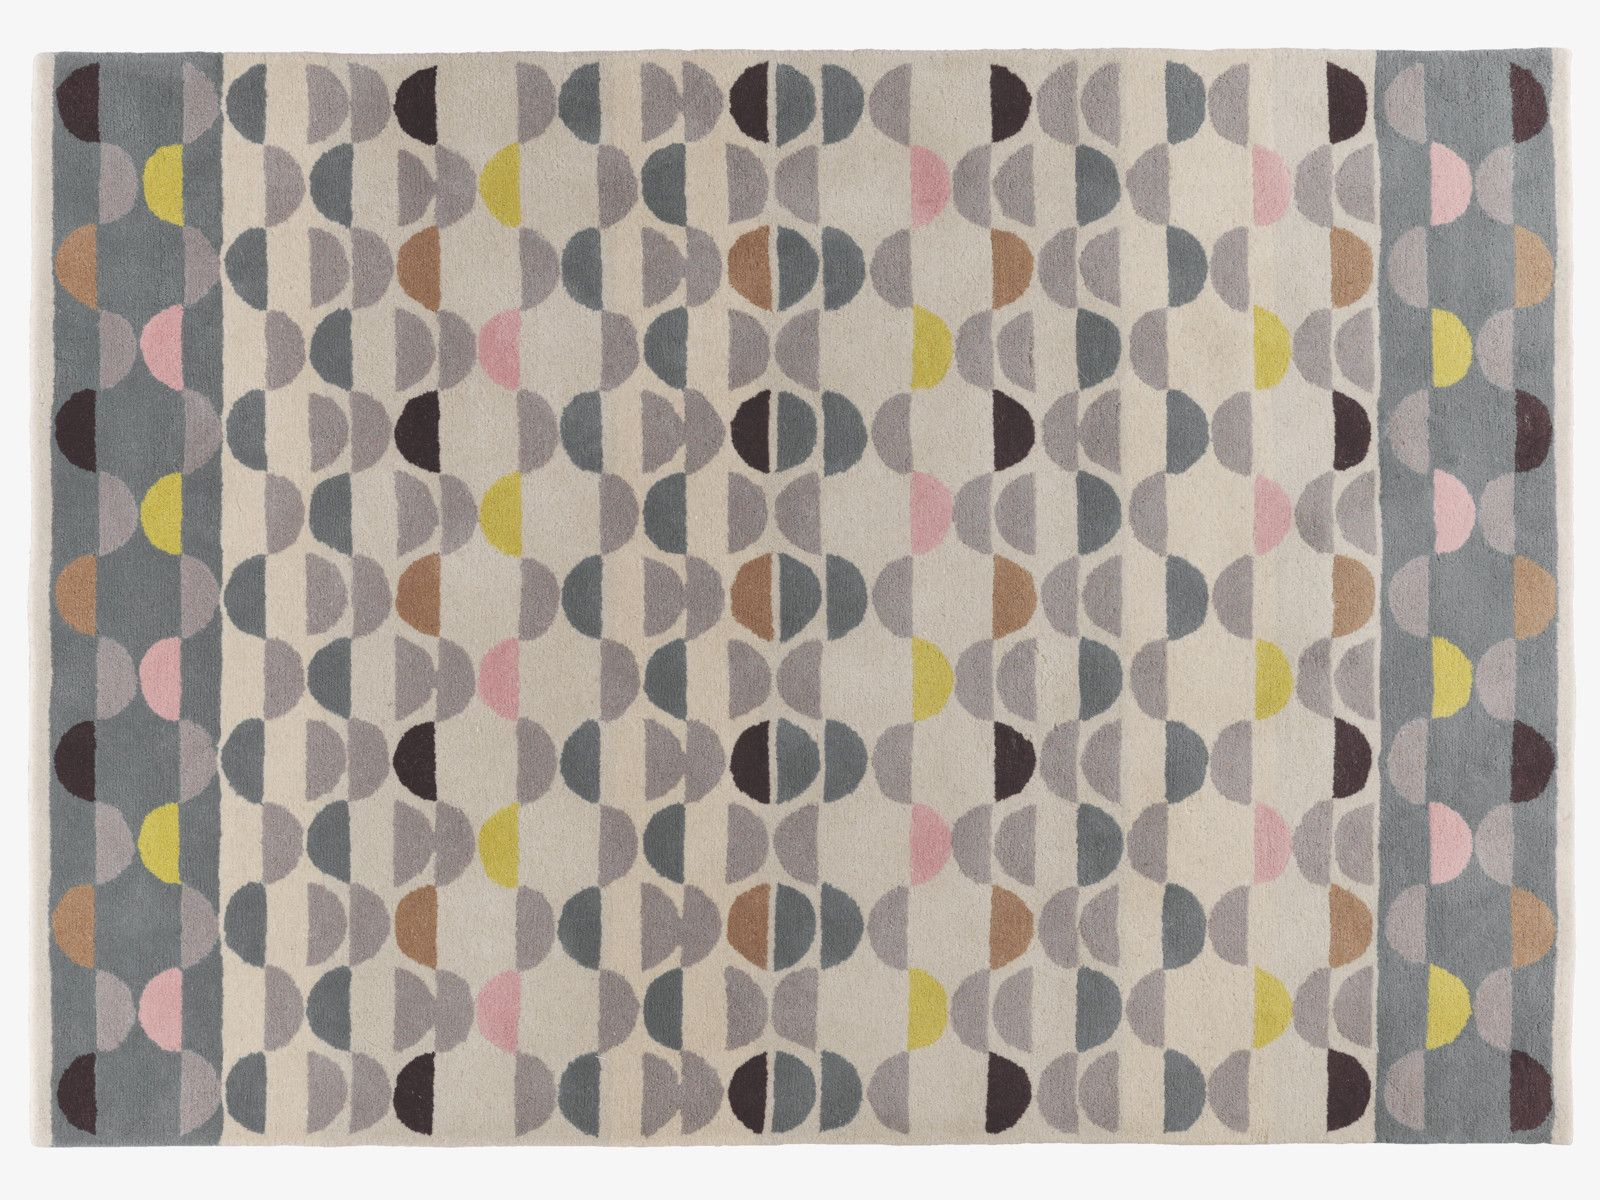 Odeon Neutral Wool Large Multi Coloured Wool Rug 170 X 240cm Habitatuk Rugs Wool Rug Colorful Rugs